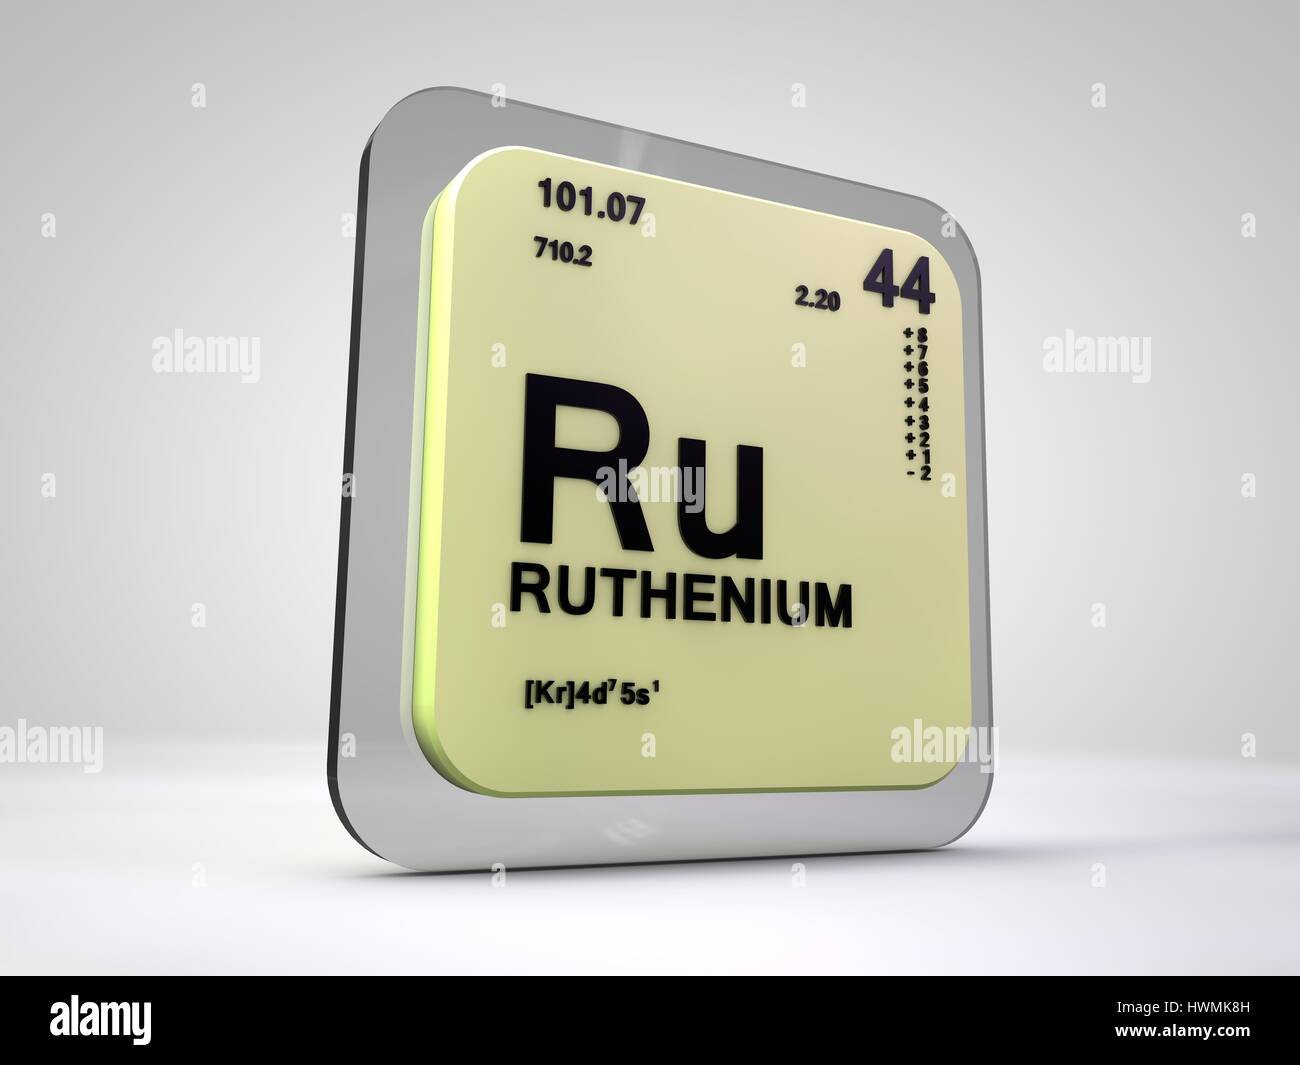 Ruthenium ru chemical element periodic table 3d render stock ruthenium ru chemical element periodic table 3d render gamestrikefo Choice Image